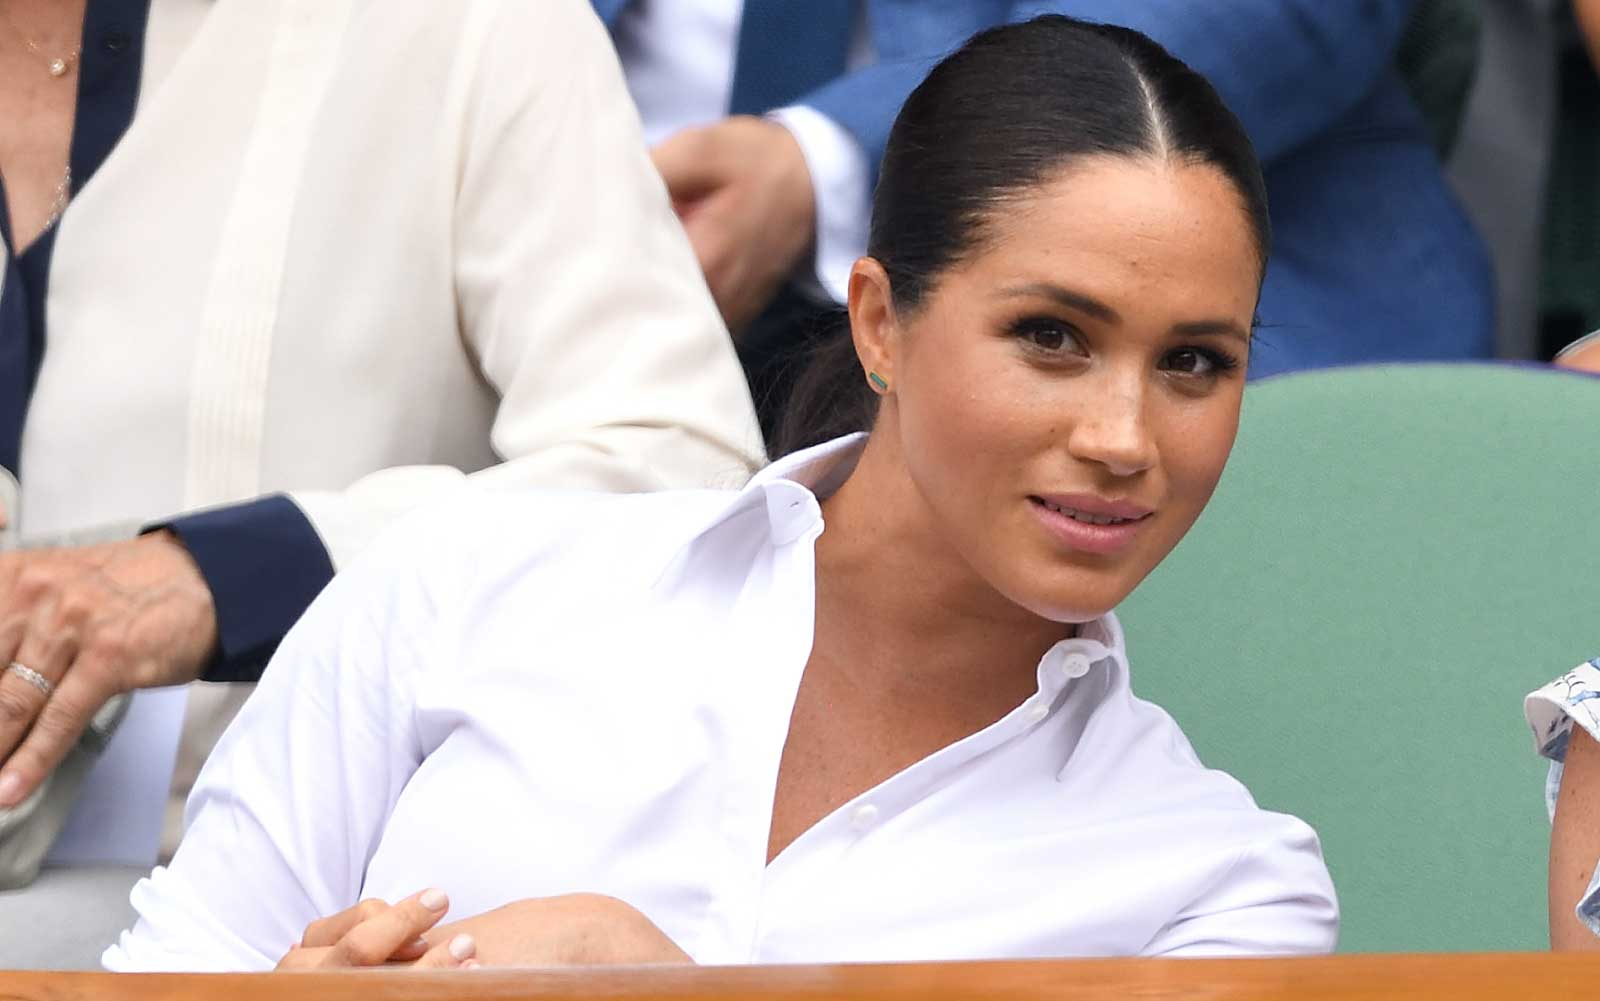 Duchess Meghan of Sussex